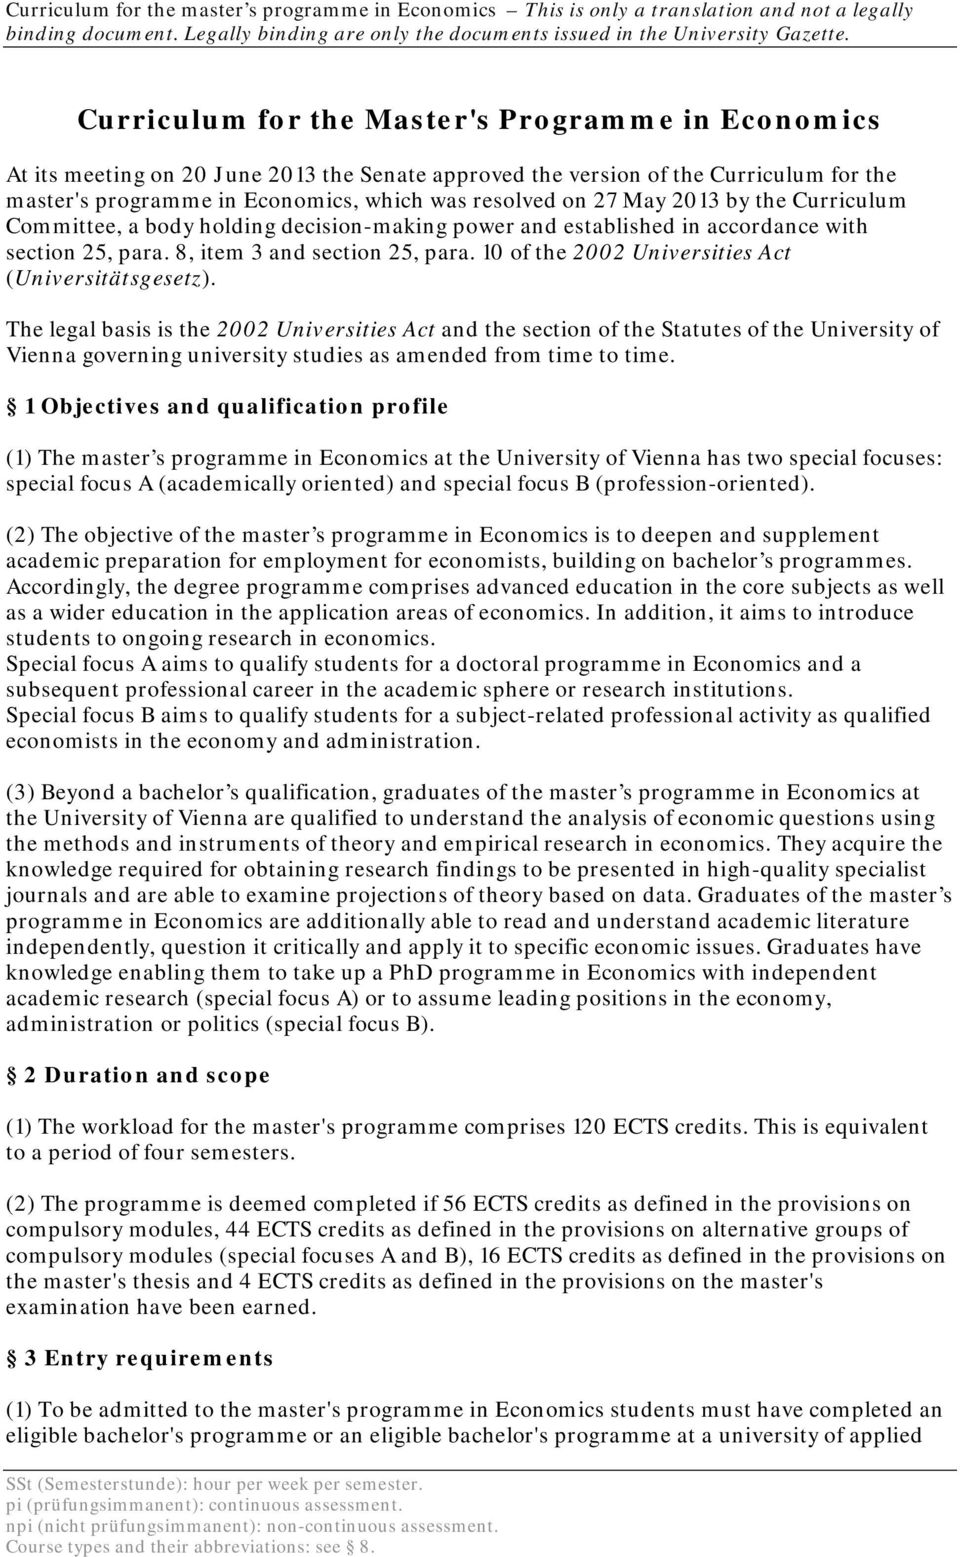 10 of the 2002 Universities Act (Universitätsgesetz).